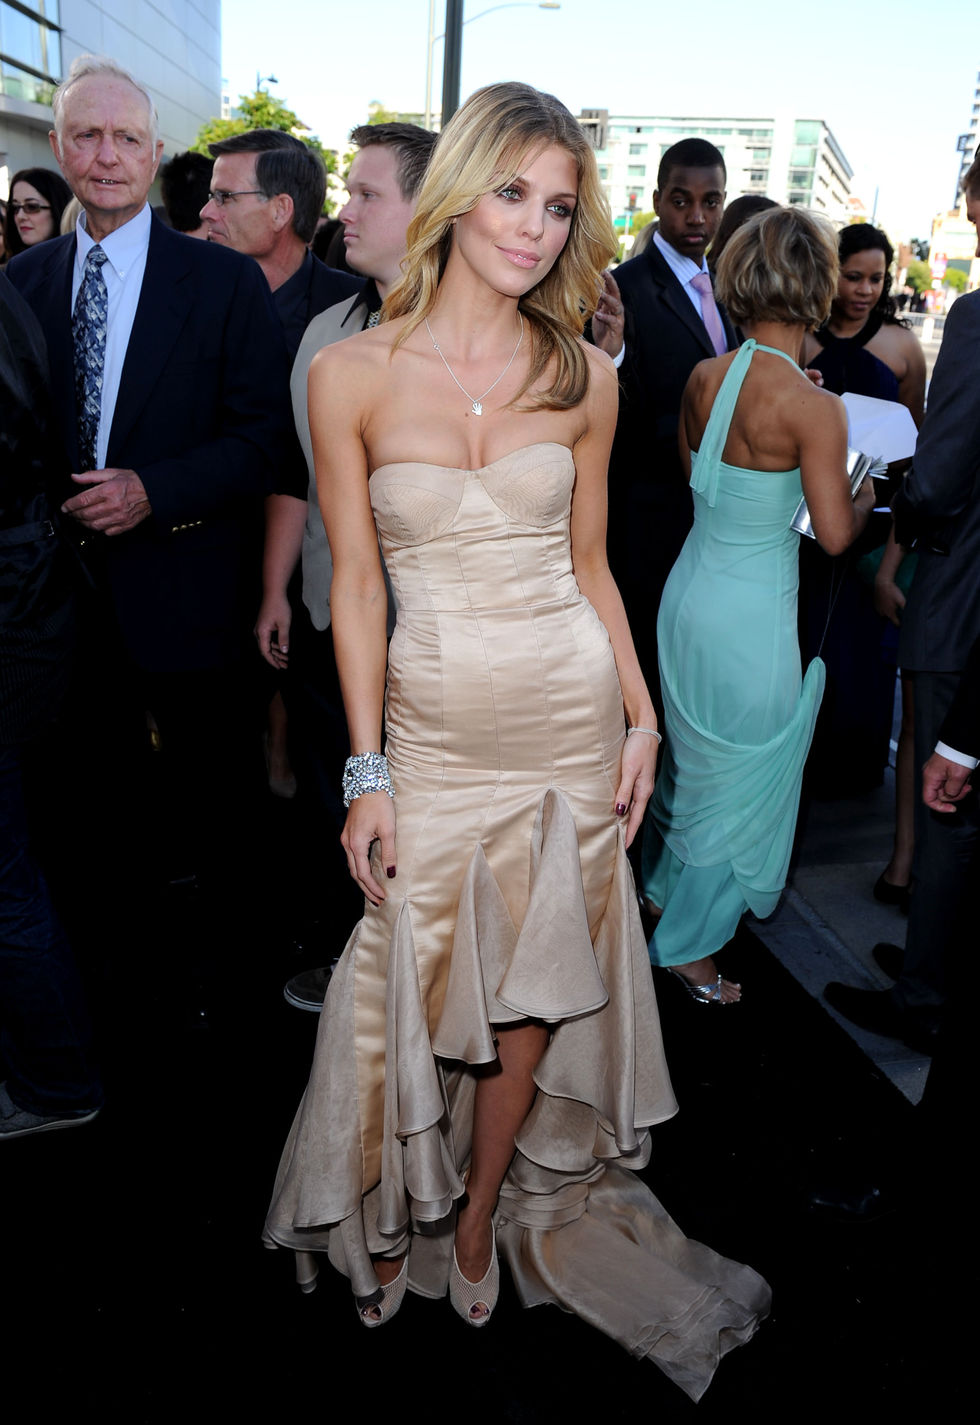 AnnaLynne McCord 2010 : annalynne-mccord-twilight-saga-eclipse-premiere-nokia-theater-in-la-15